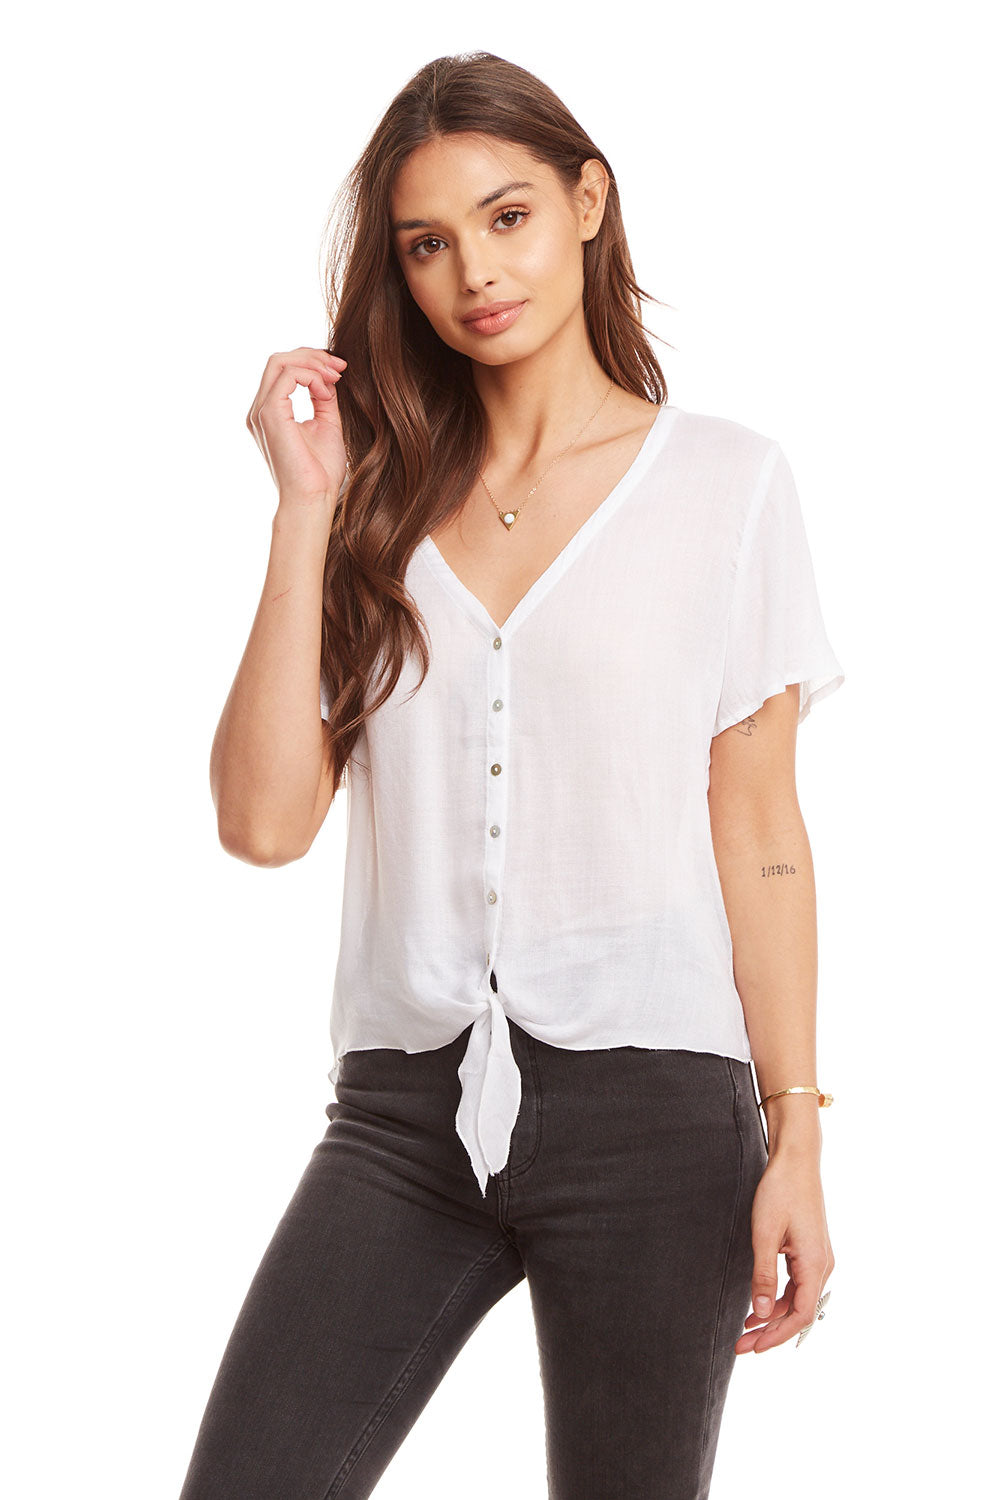 d5ed3127 Heirloom Gauze V Neck Tie Front Short Sleeve Button Down Shirt, WOMENS,  chaserbrand.